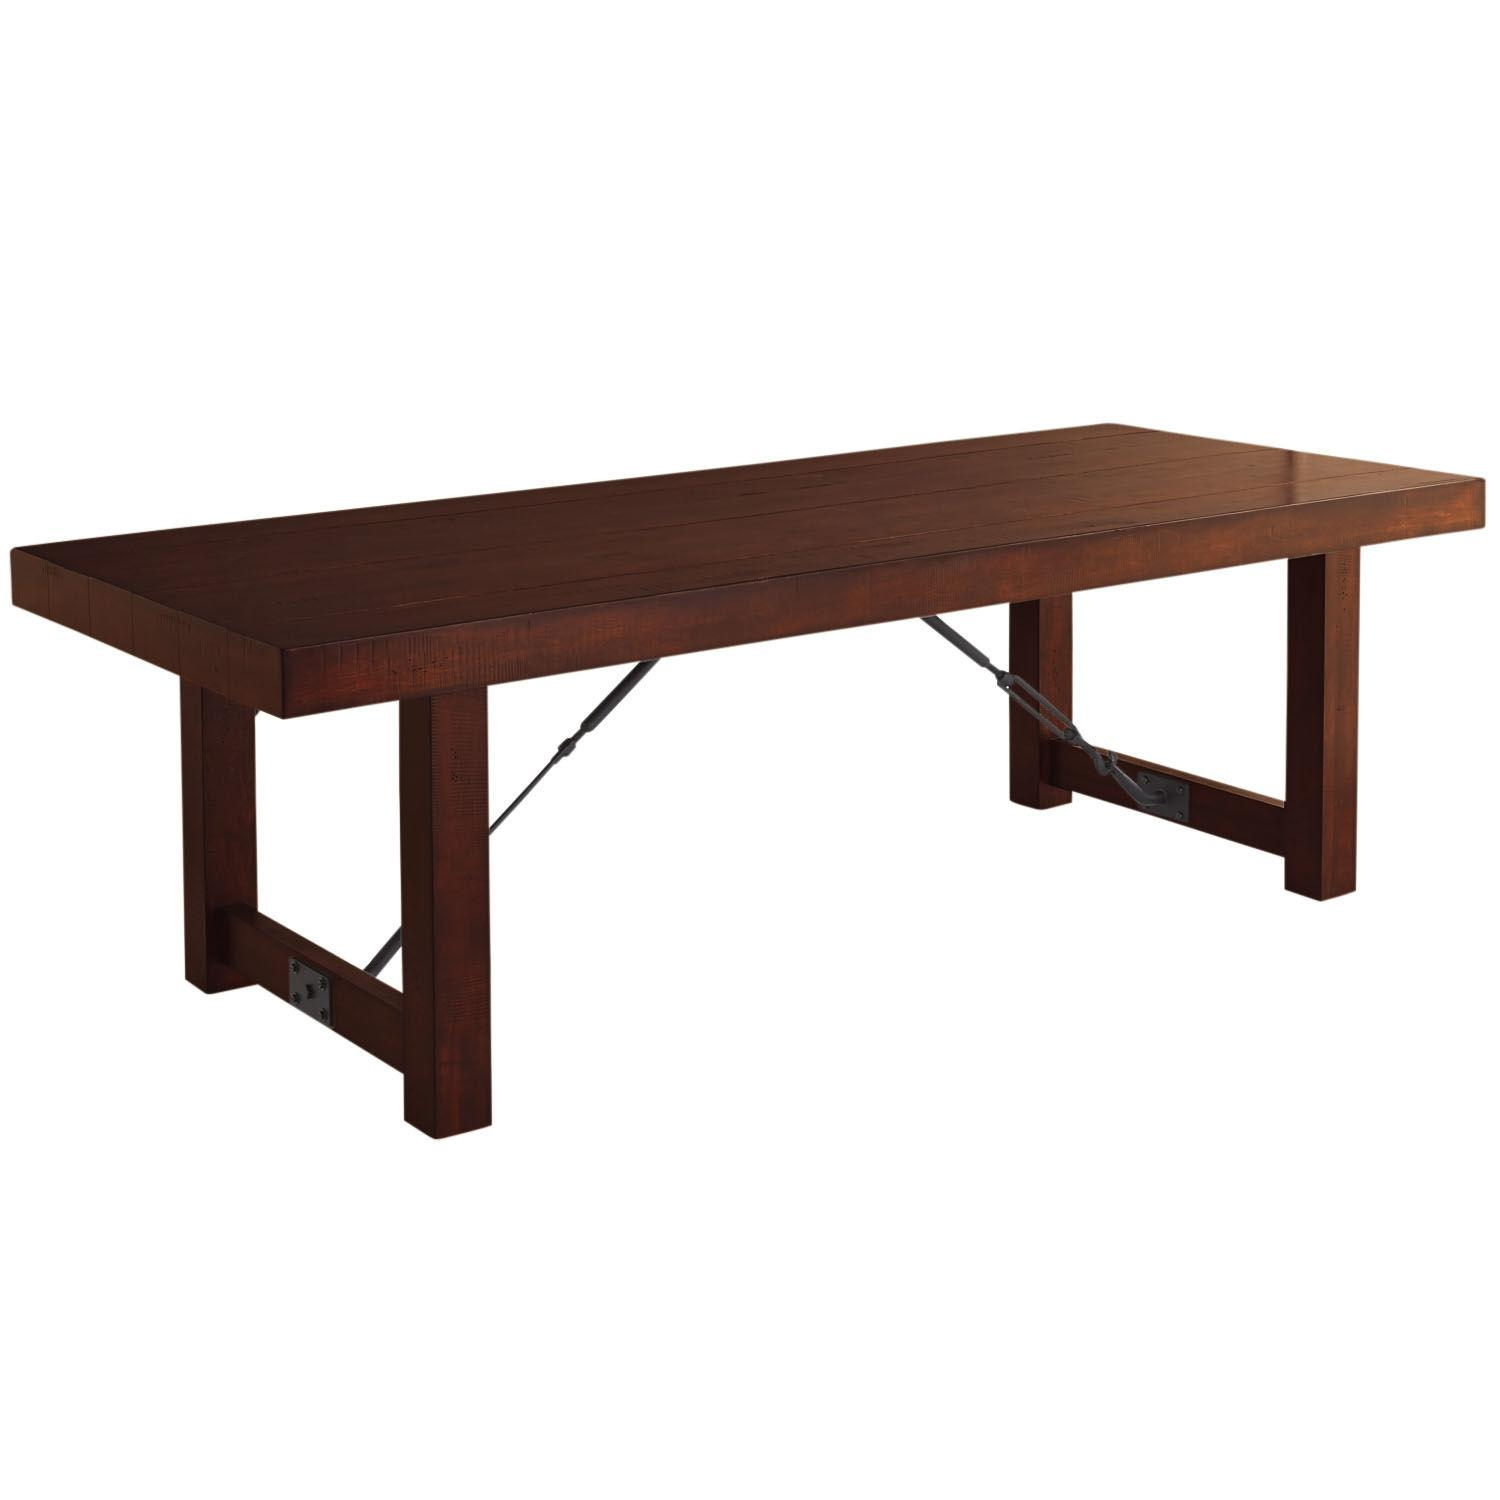 81 Exciting Pier One Sofa Table Home Design Red Side Tables Black with Pier 1 Sofa Beds